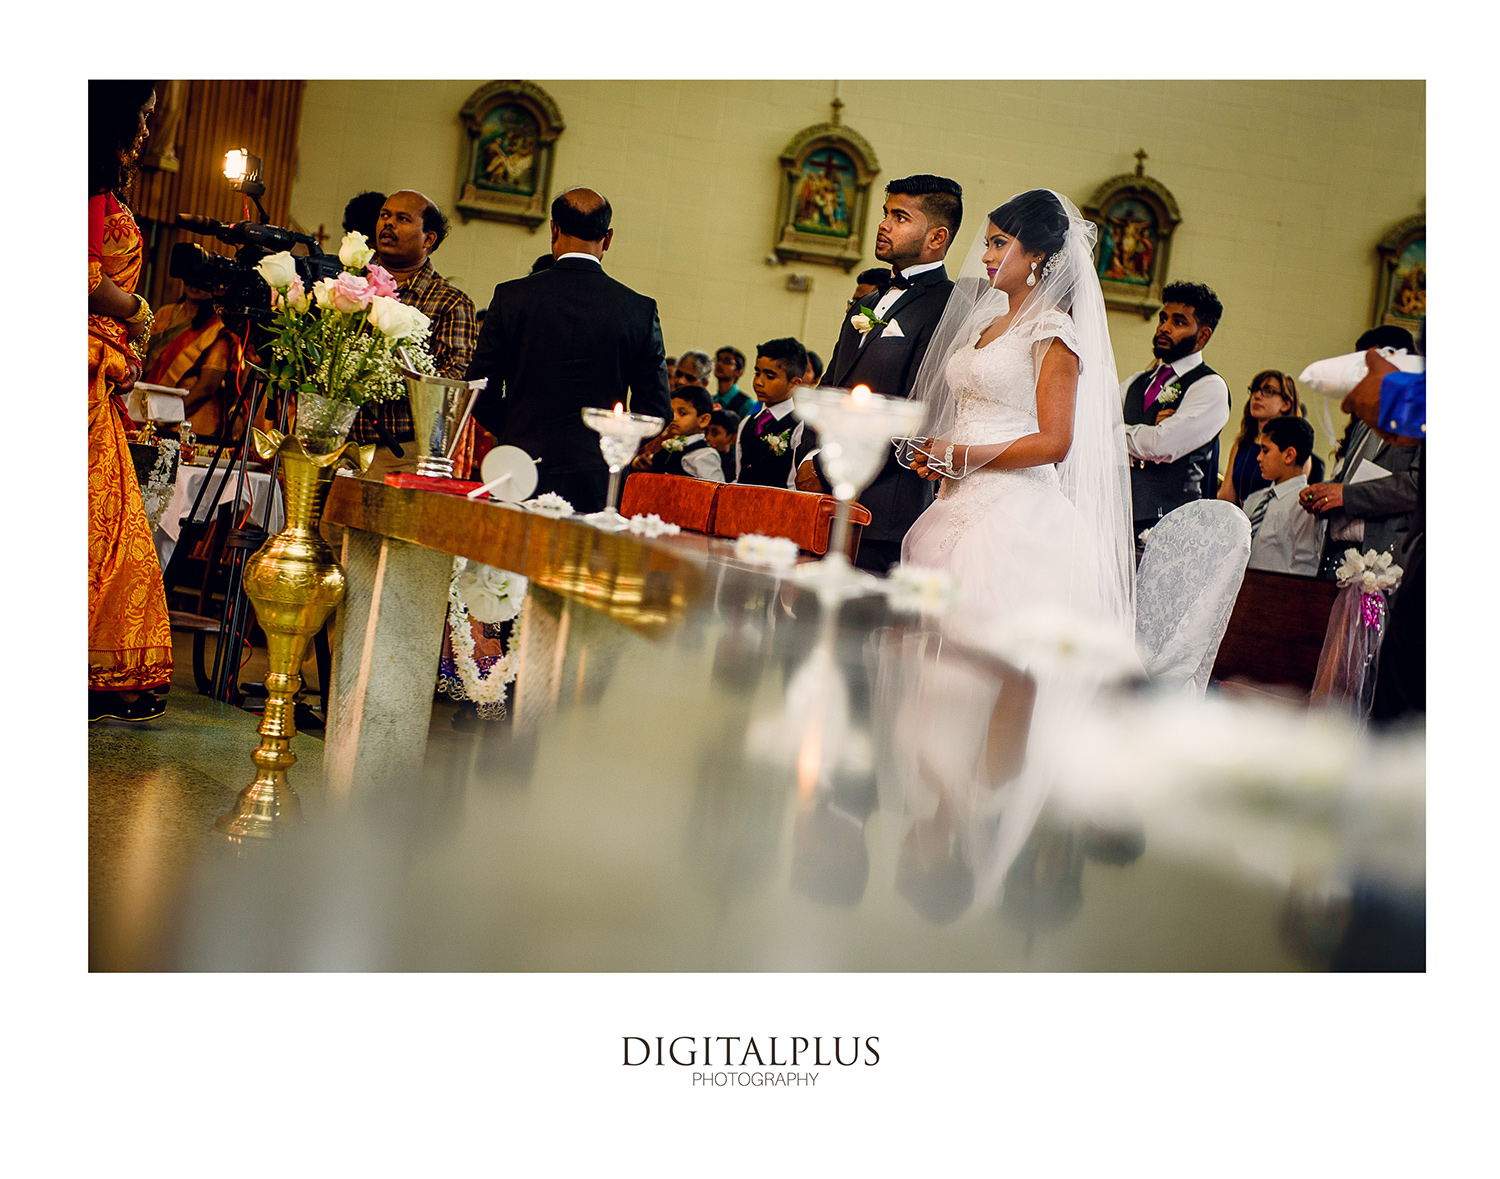 Sharmi&Koki(ChristianWED2015)---TEASER14.jpg